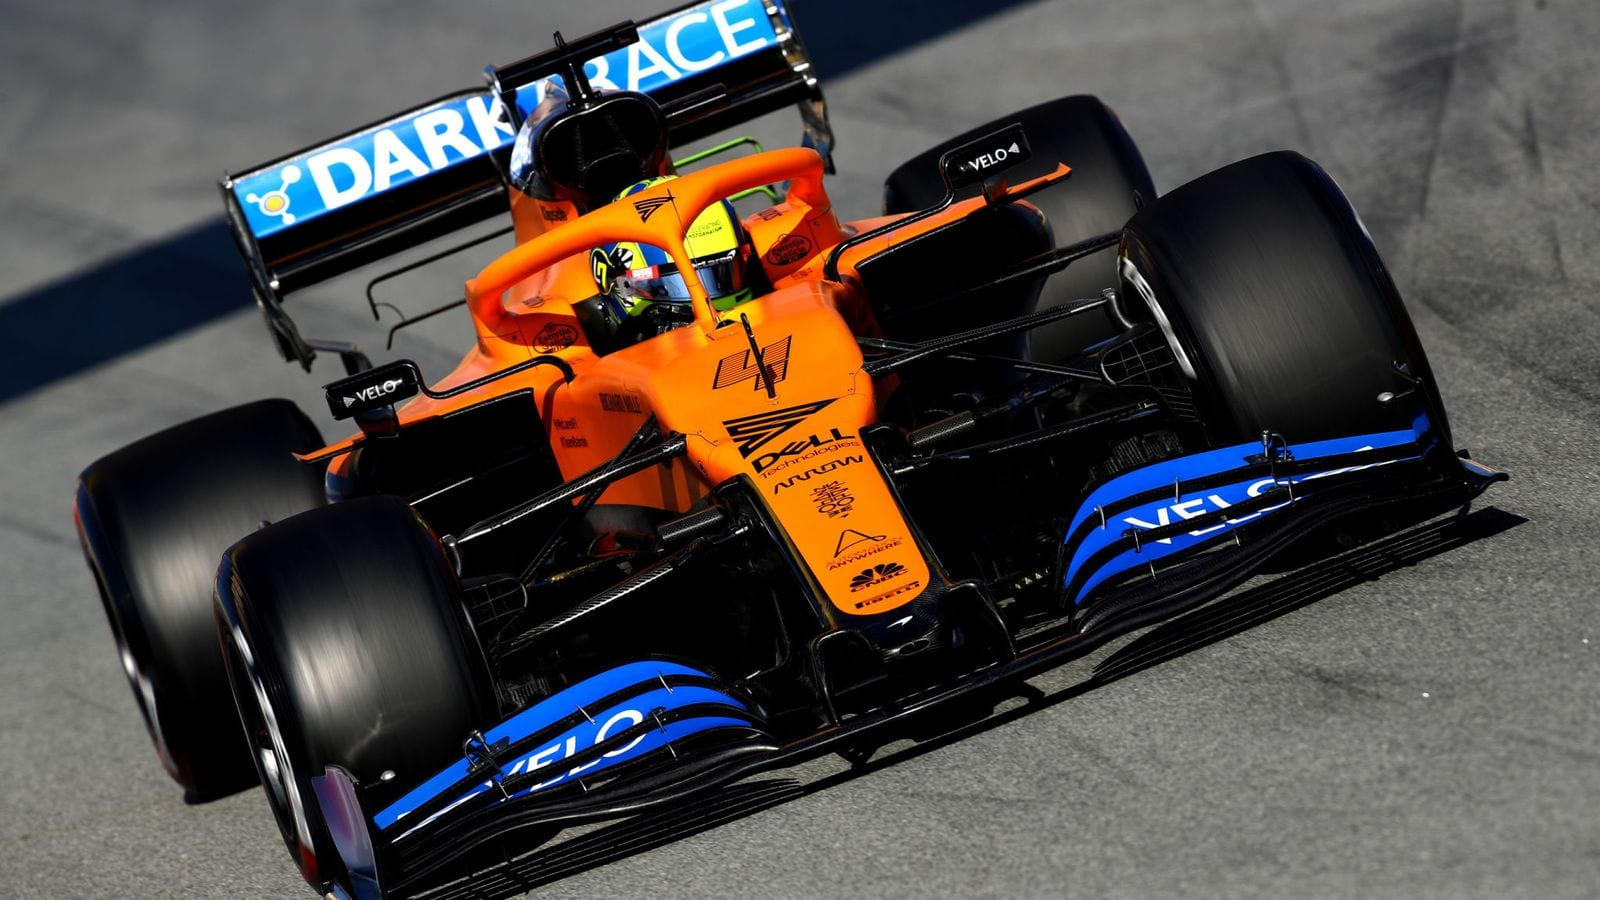 McLaren pull out of Australian General Practitioner after group participant contracts coronavirus|F1 News